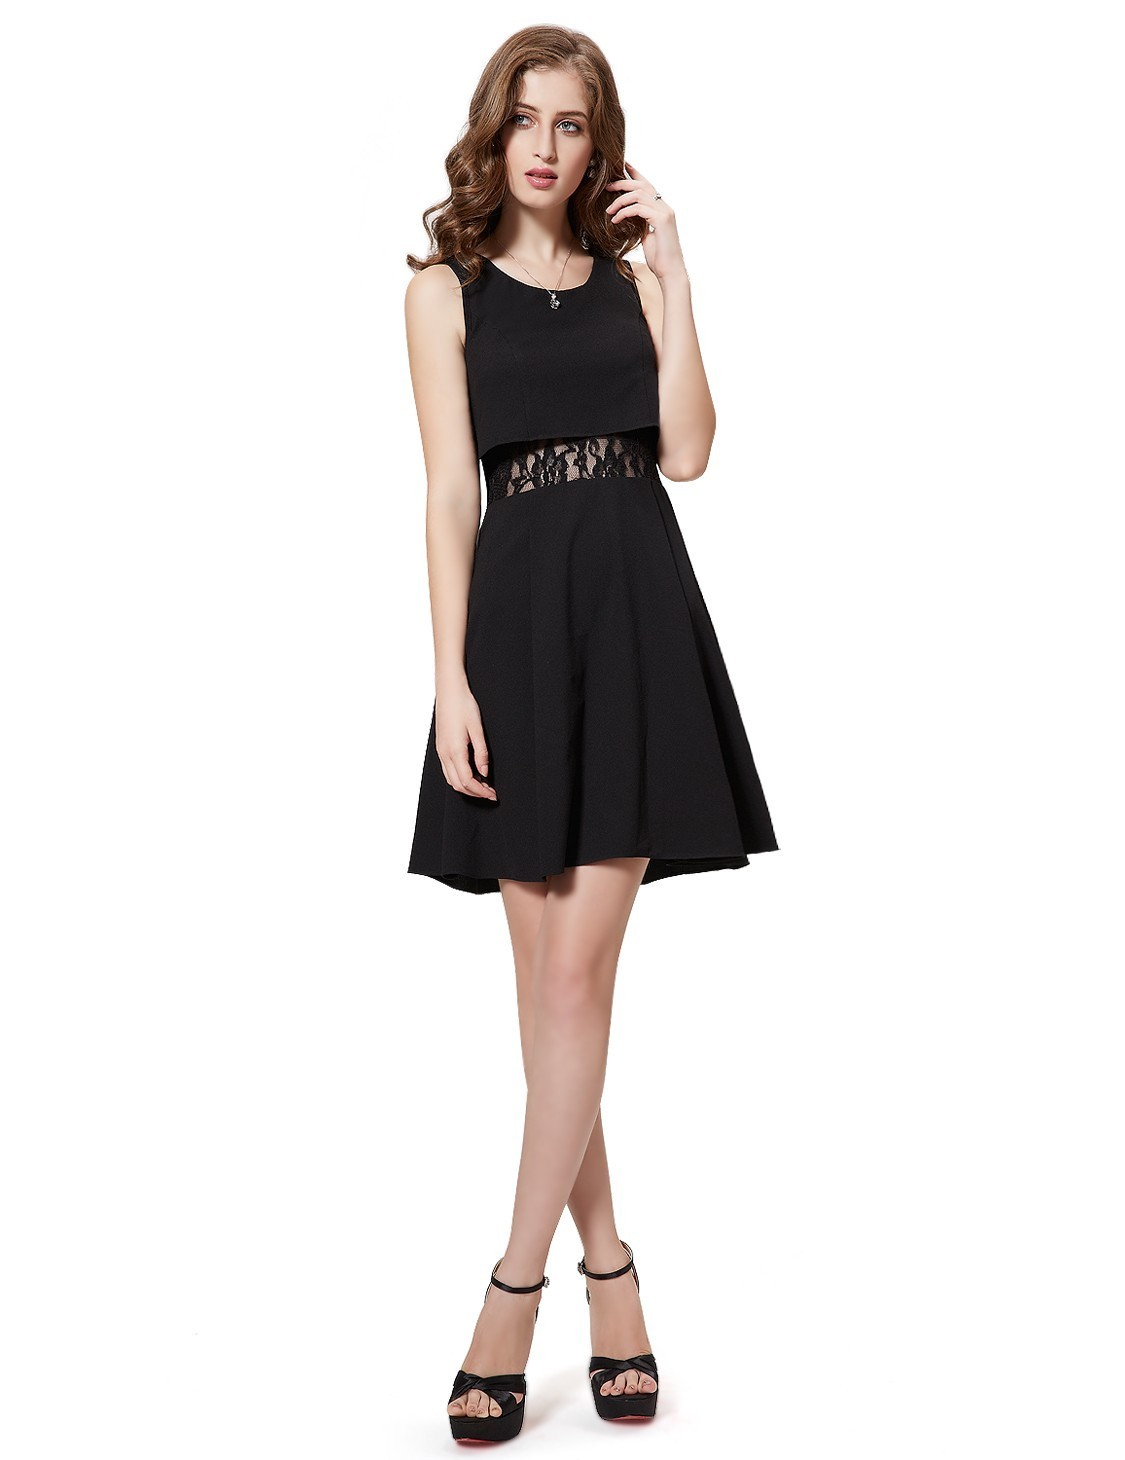 【日本未入荷】Two-Piece Black Cocktail Party dress_H-071